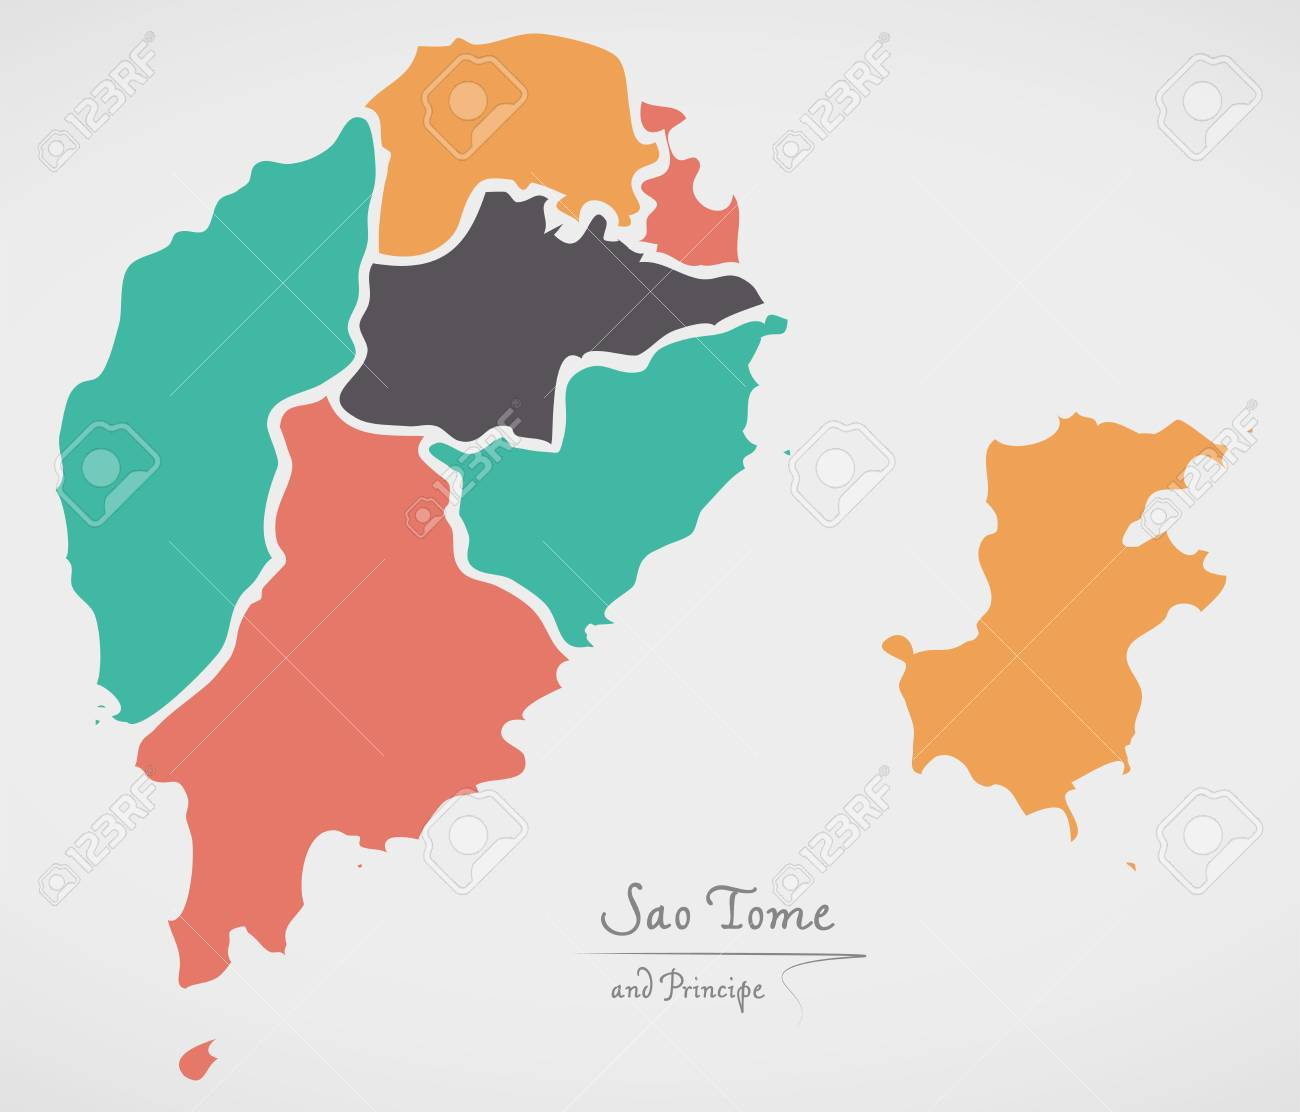 Sao tome and principe map with states and modern round shapes sao tome and principe map with states and modern round shapes stock vector 82438973 gumiabroncs Choice Image